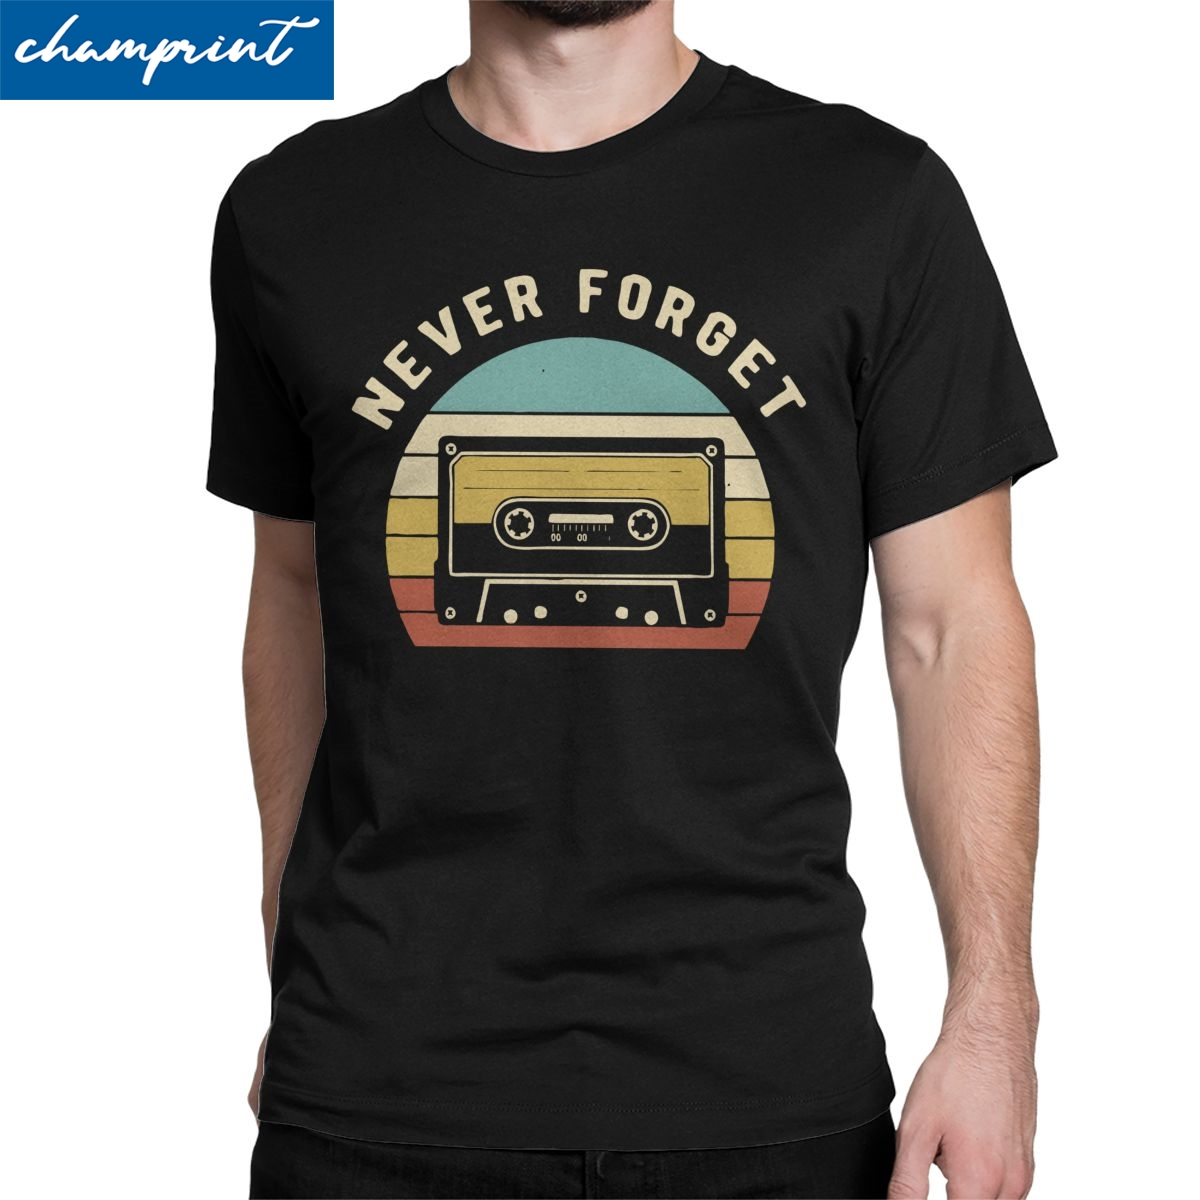 Vintage Cassette Tape Never Forget Funny Retro Music Lover Gift T-Shirt for Men Nerd Oldshcool Gaming Vintage 100% Cotton Tees